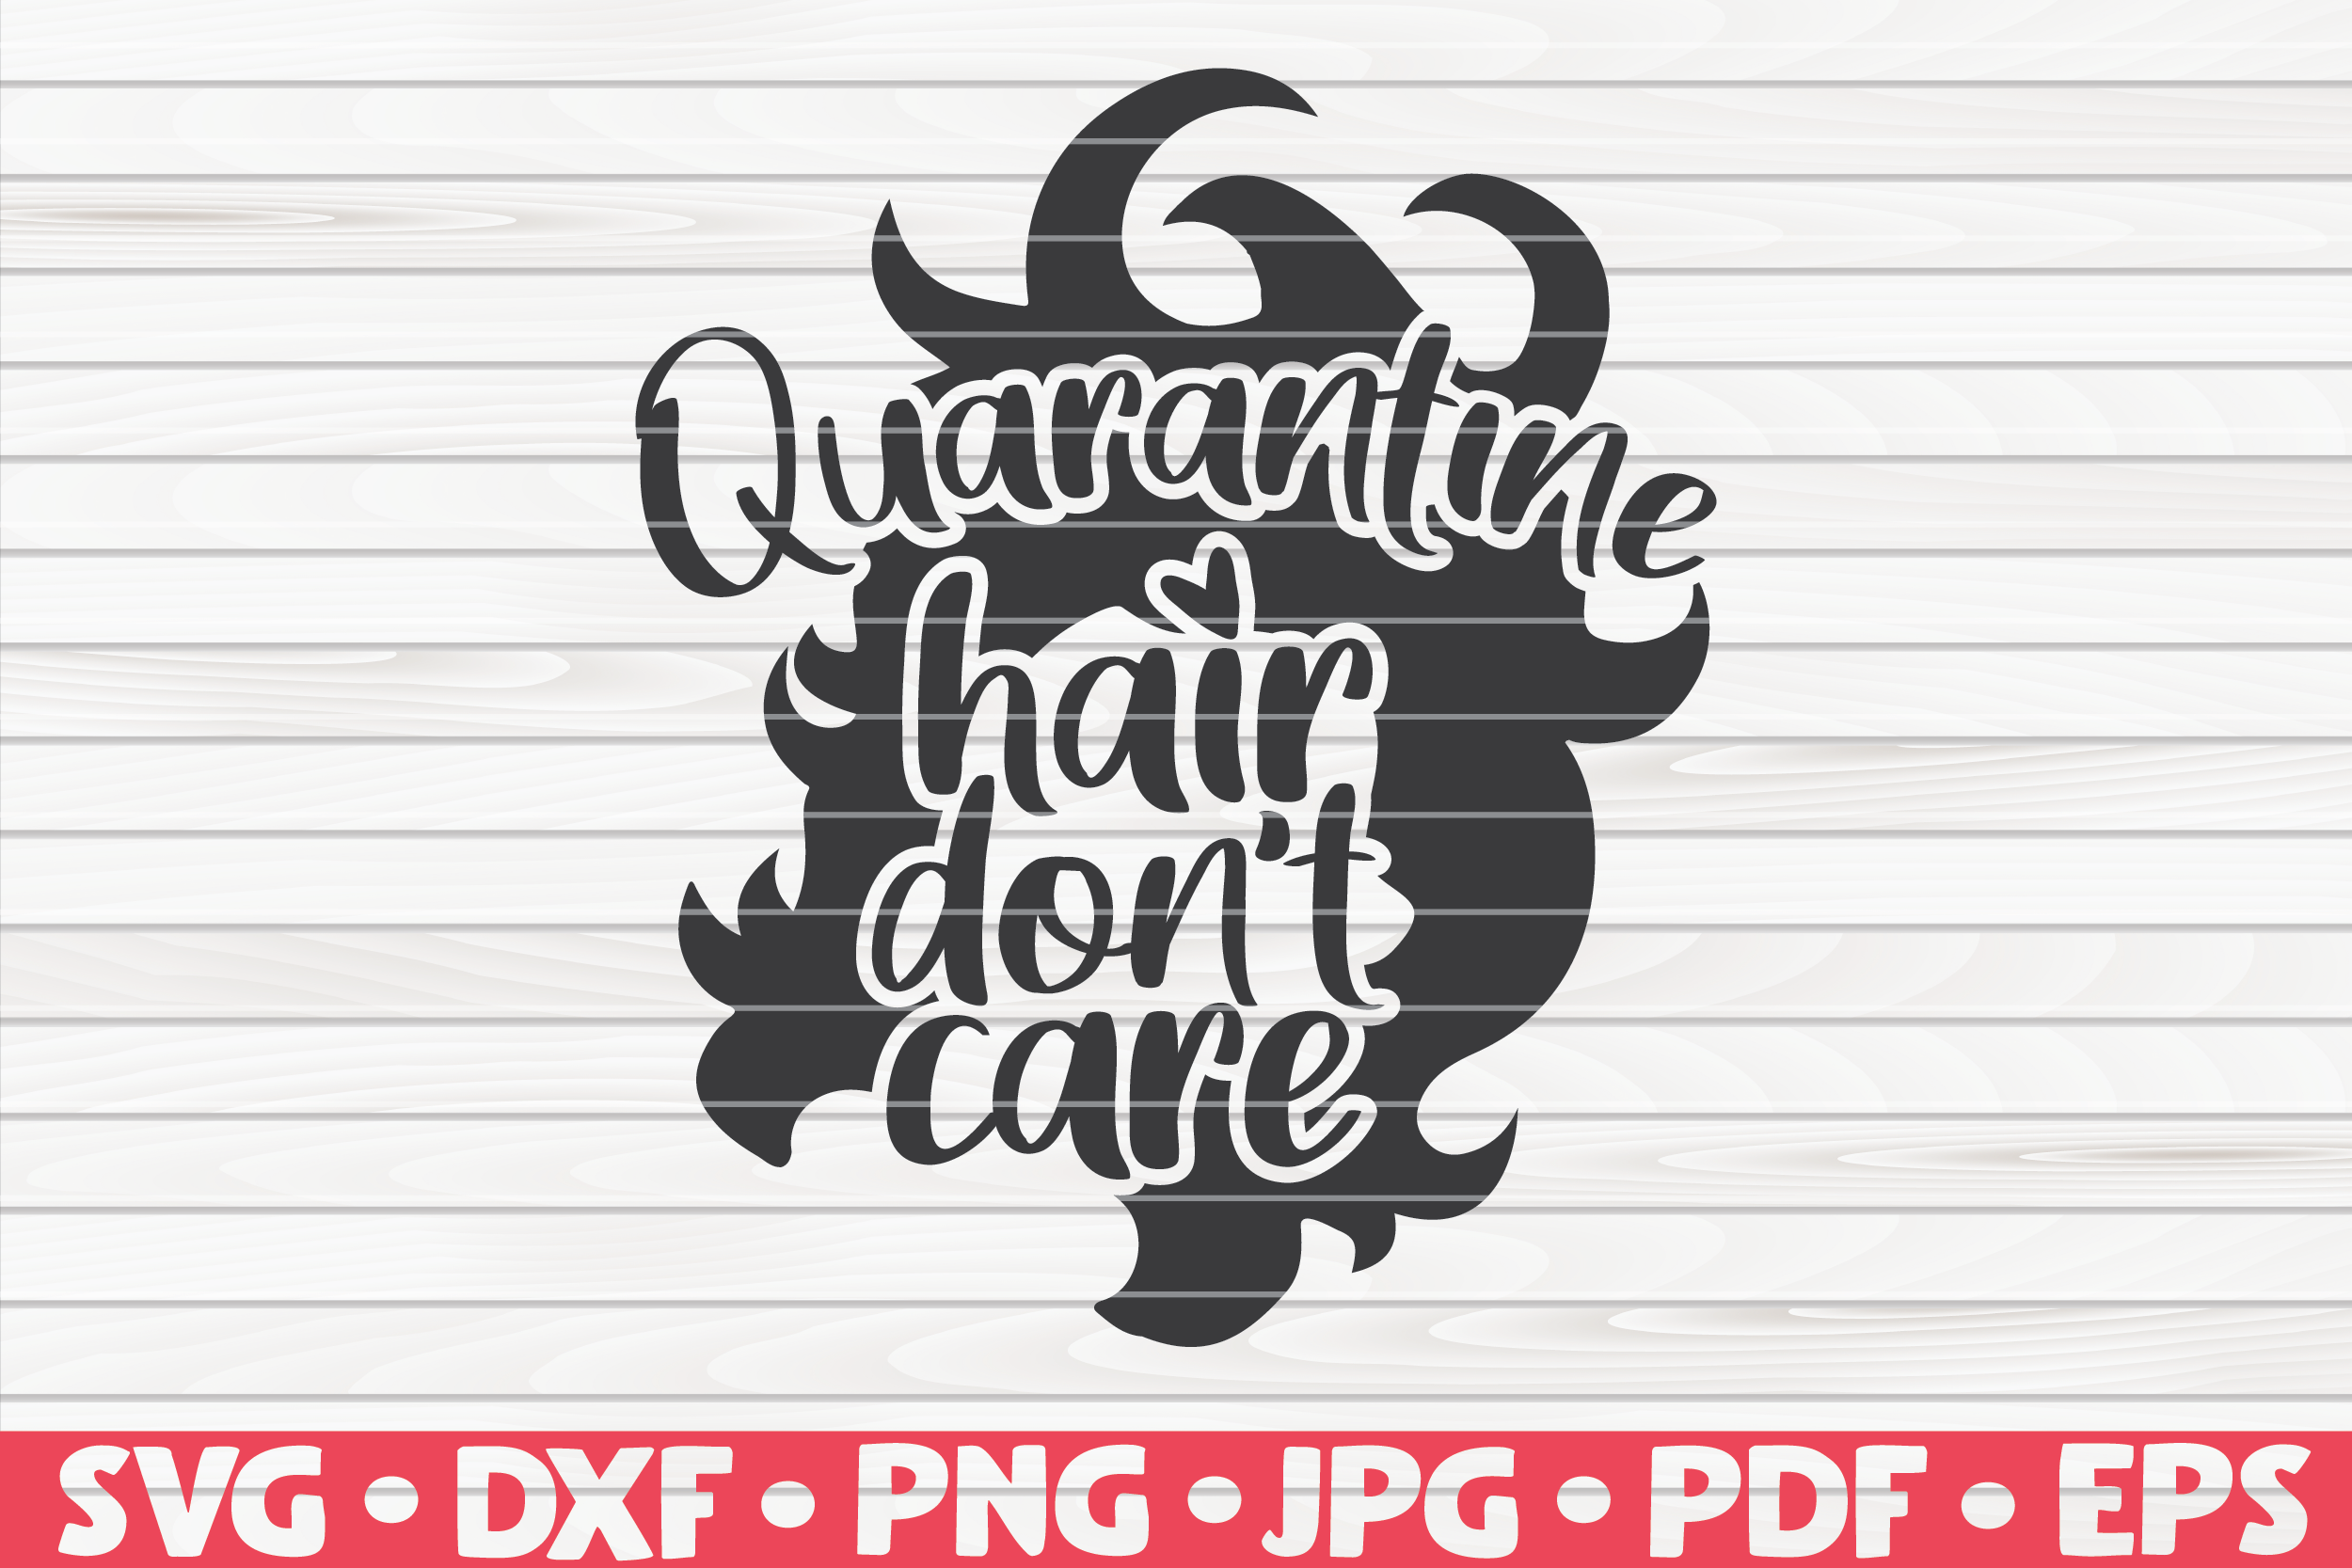 Download Free Quarantine Hair Don T Care Graphic By Mihaibadea95 Creative SVG Cut Files